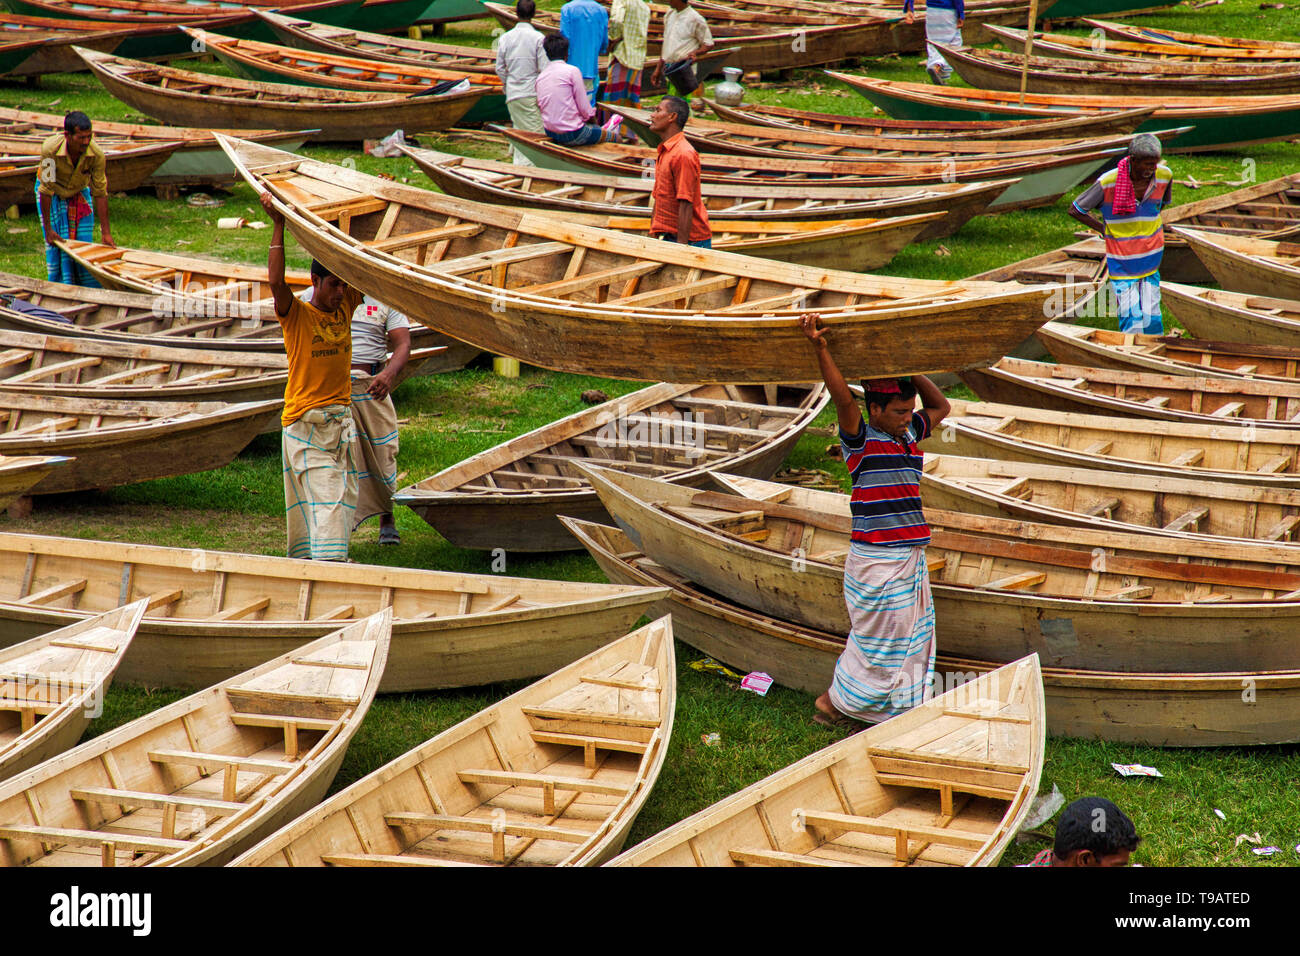 Manikganj, Bangladesh. 15th Aug, 2018. Craftsmen seen carrying a boat among hundreds of little wooden boats displayed for sale at a market as locals prepare for monsoon season. Dozens flock from miles around to buy their own boat at a market in Manikganj, Bangladesh, so as to be prepared for floods which can strike at any time. After heavy rainfall it is common for river banks to burst, submerging nearby towns and villages. This means cars and buses become redundant and people are forced to travel by boat. Each of the wooden boats and oars are hand-made by local craftsmen and can be bought - Stock Image